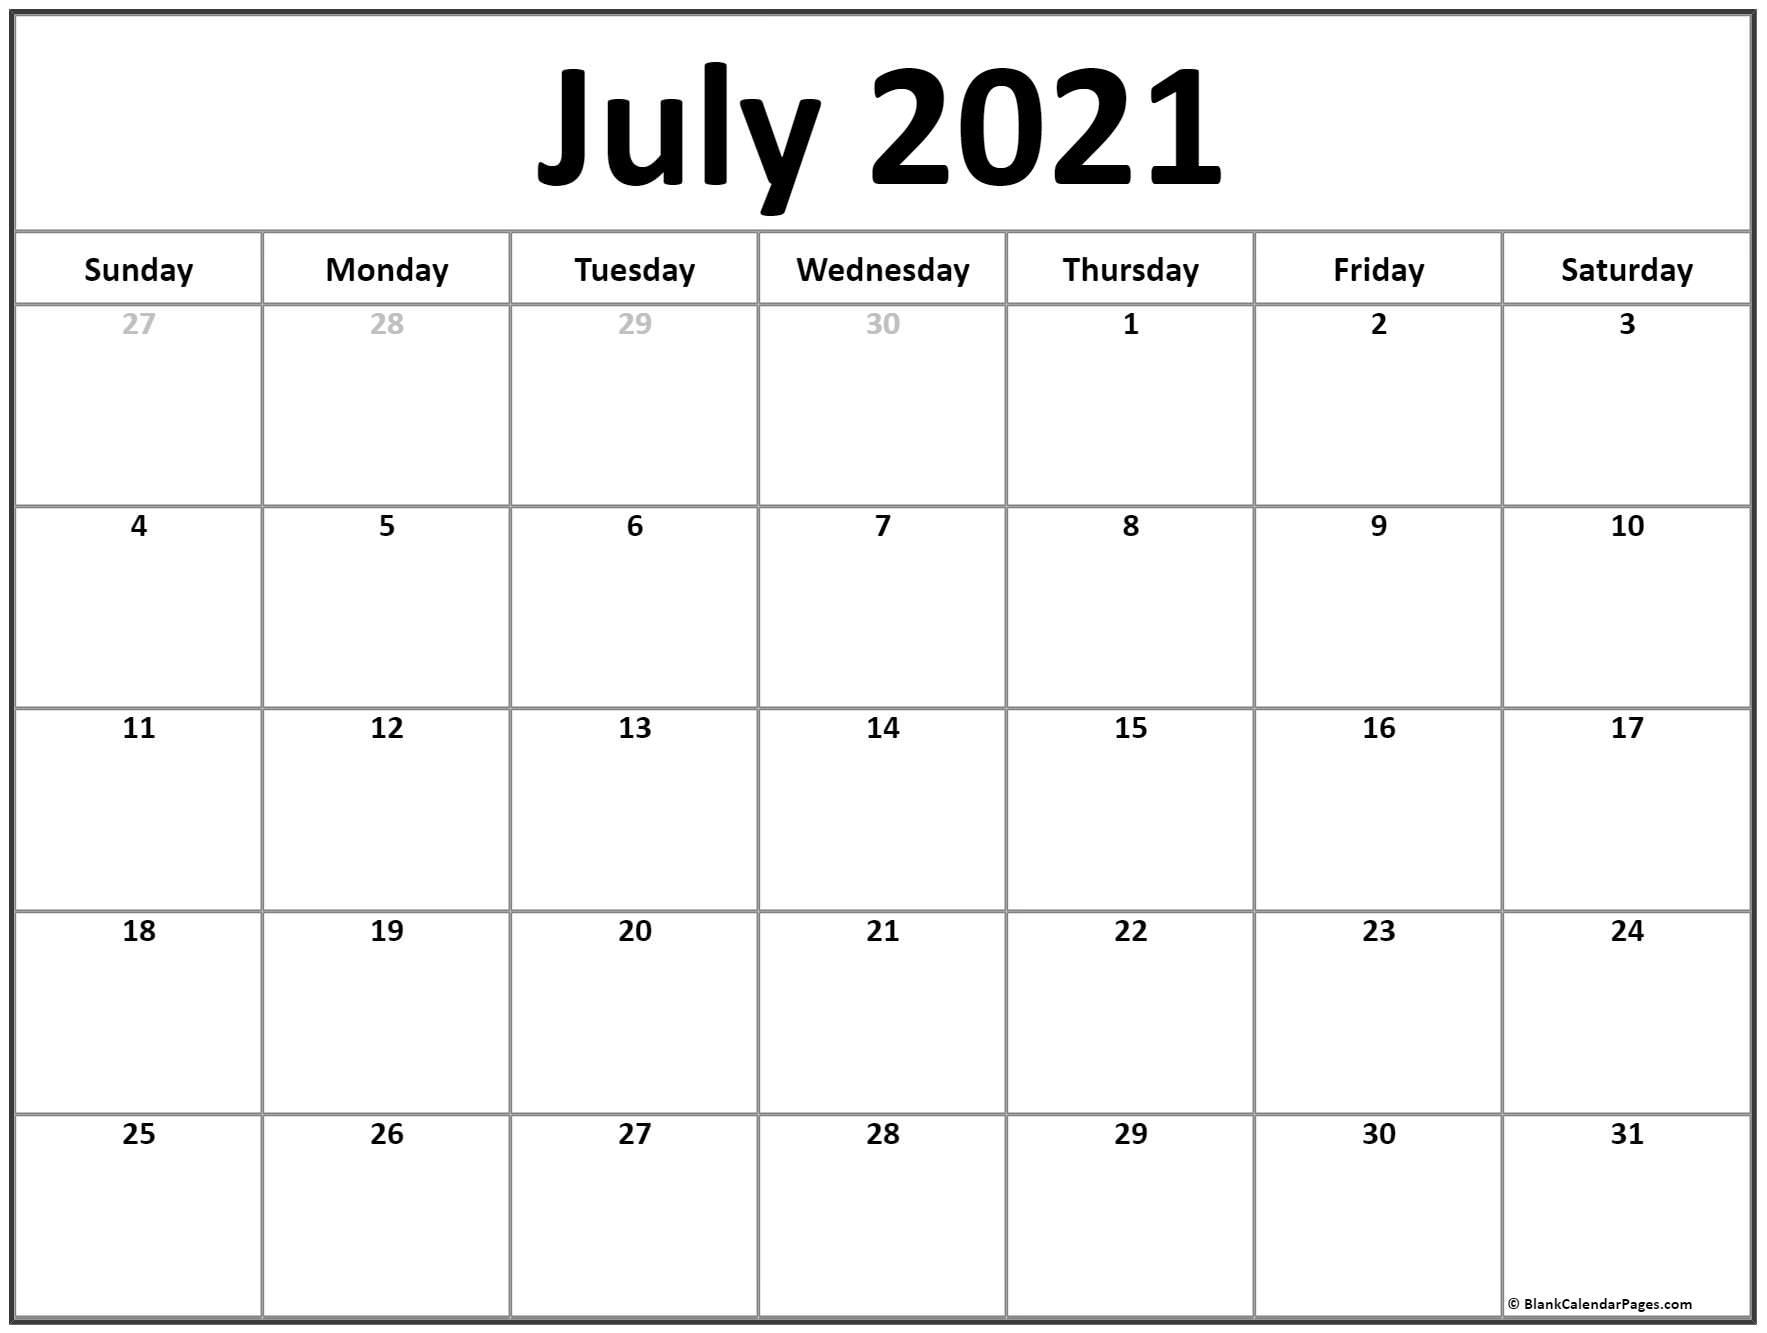 July 2021 Calendar | Free Printable Calendar Templates pertaining to Monthly Calendars Free Ruled 2021